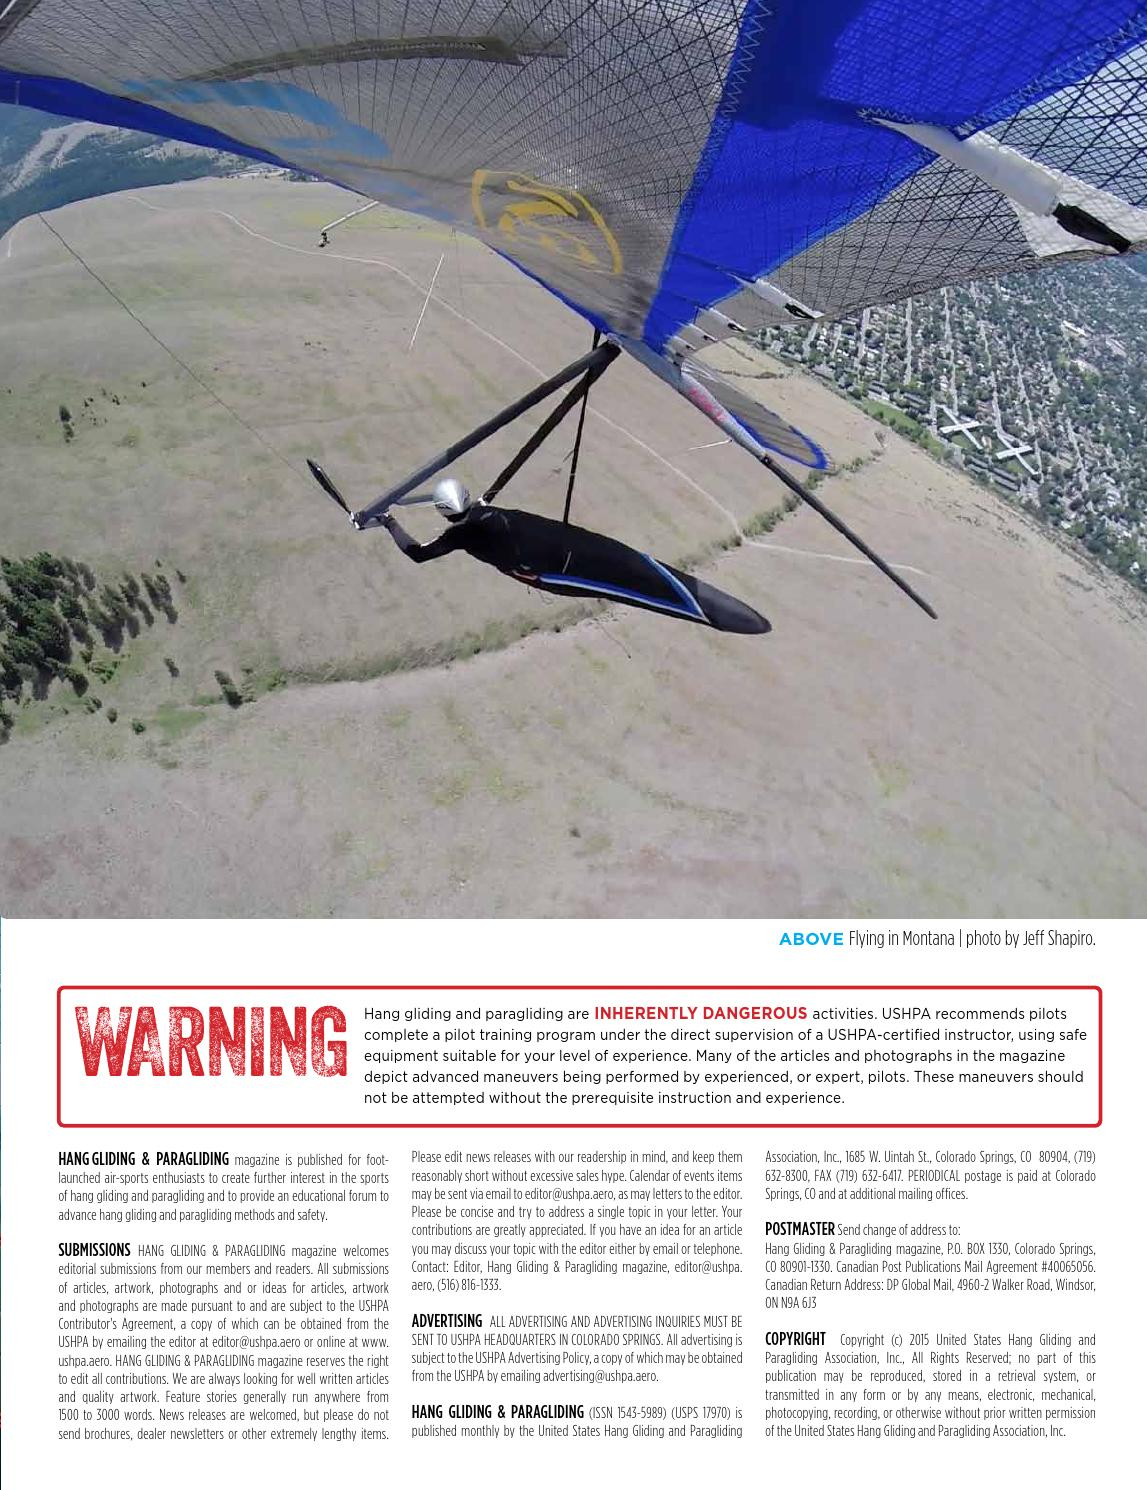 Hang Gliding & Paragliding Vol45/Iss11 Nov2015